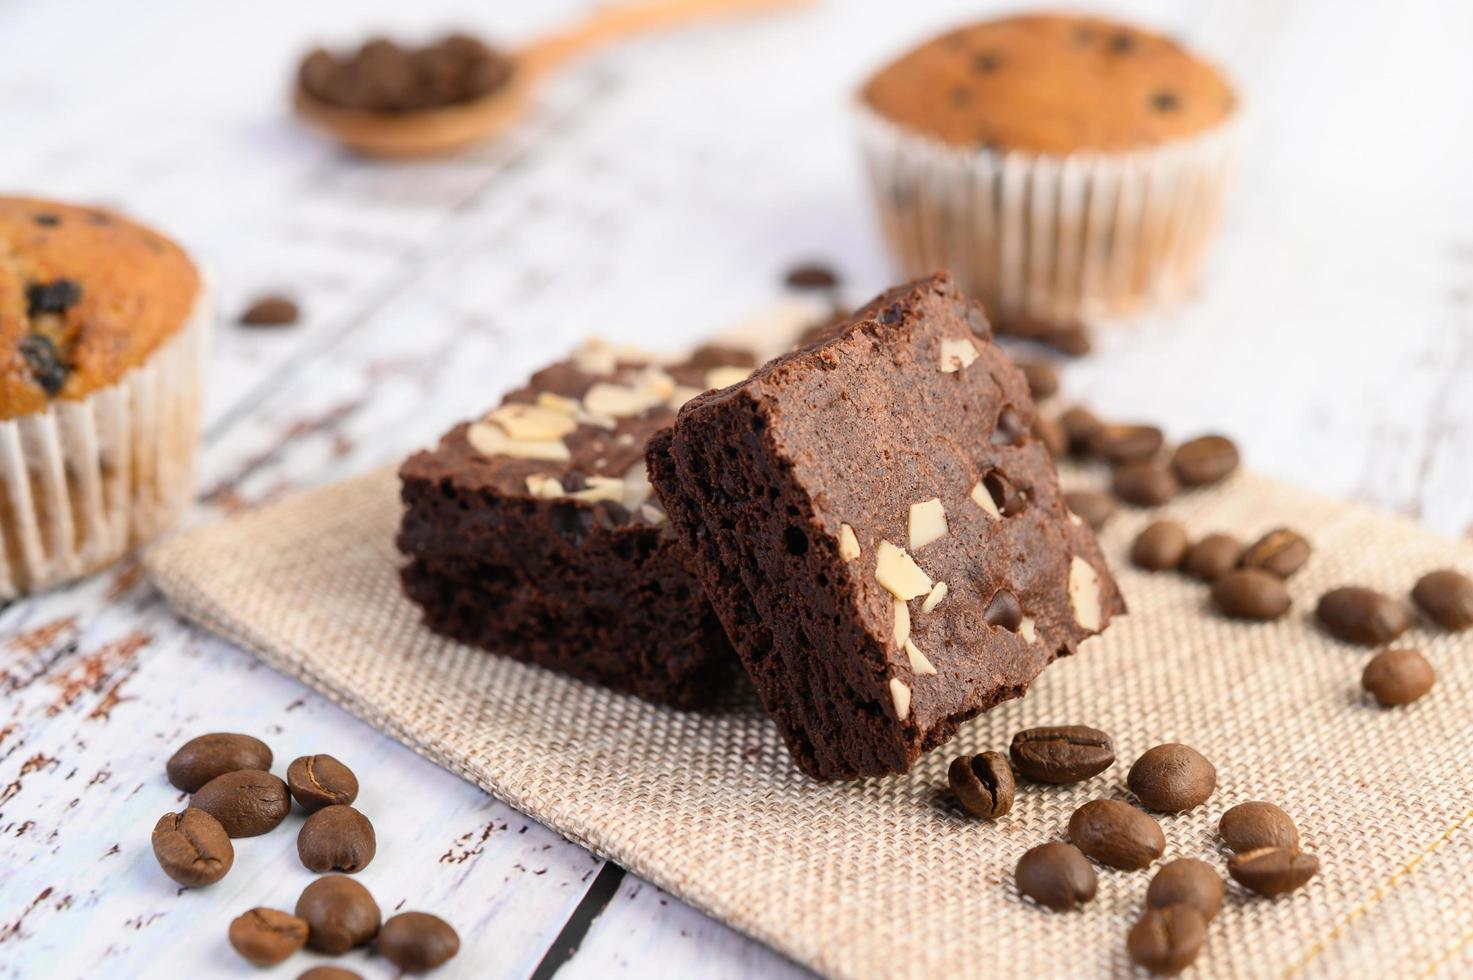 Chocolate brownies on a sackcloth with coffee beans photo